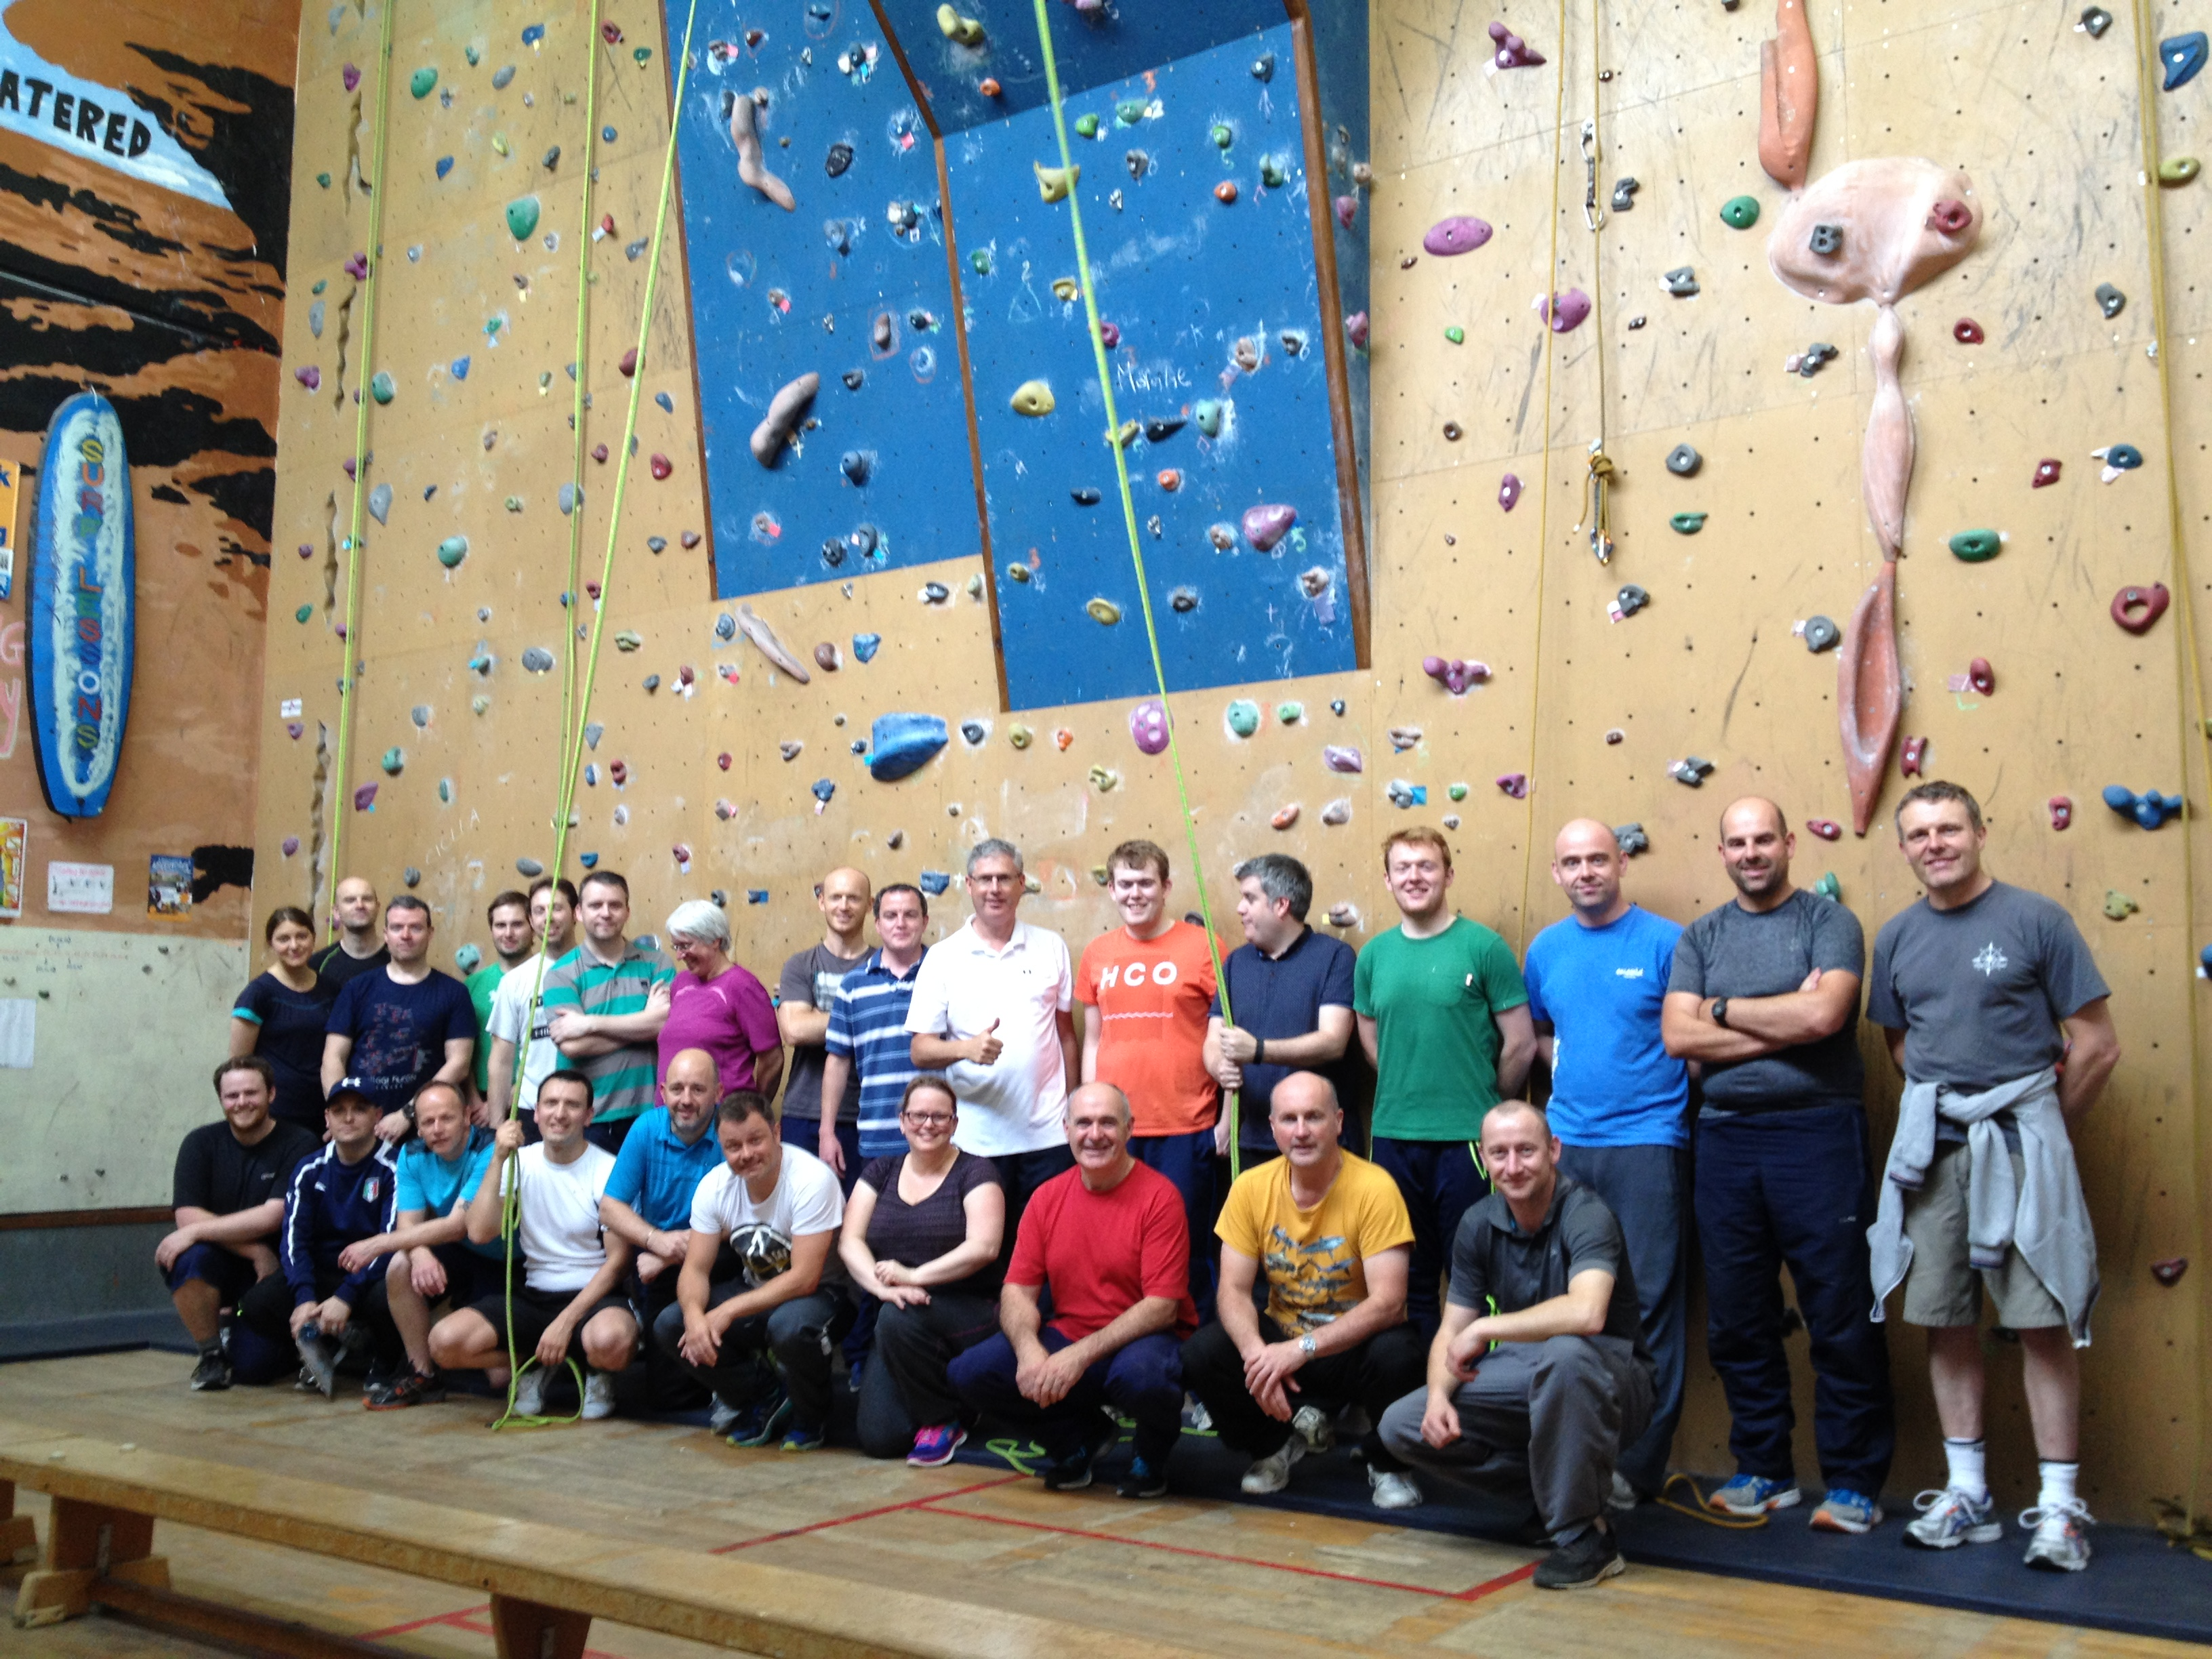 Corporate team building activities and group outings with Nevsail Adventures in Clare and Limerick